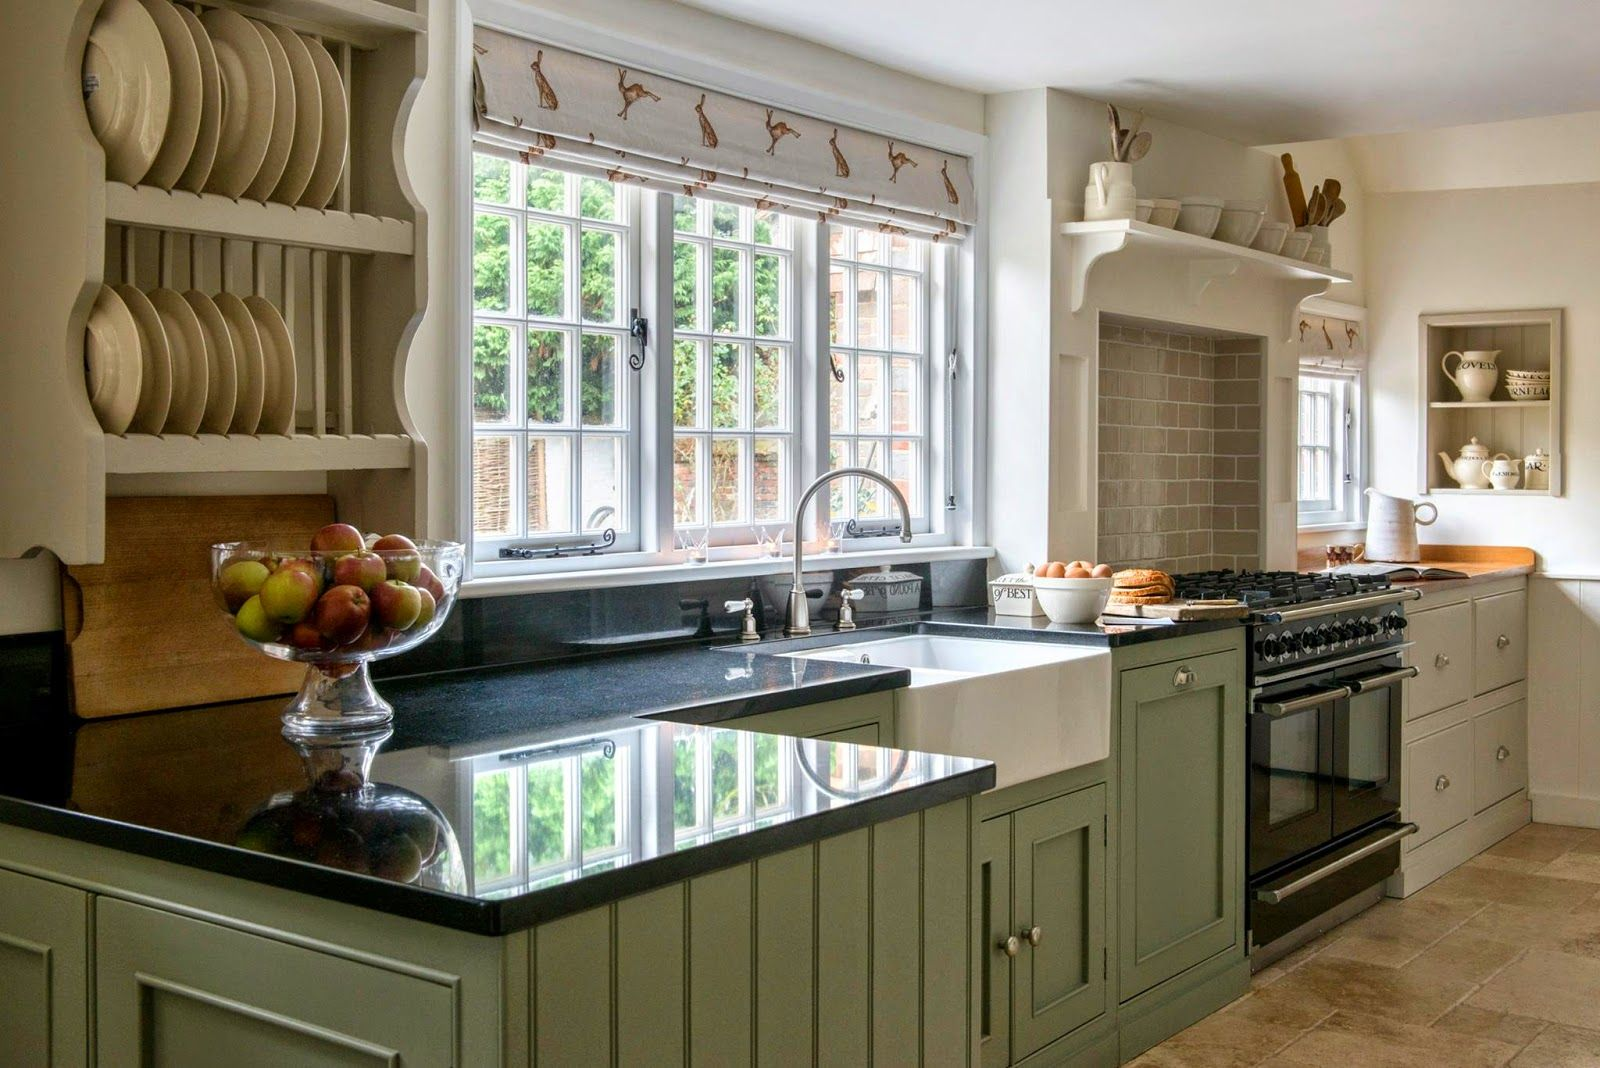 Best Modern Country Kitchen And Colour Scheme Country Chic 640 x 480